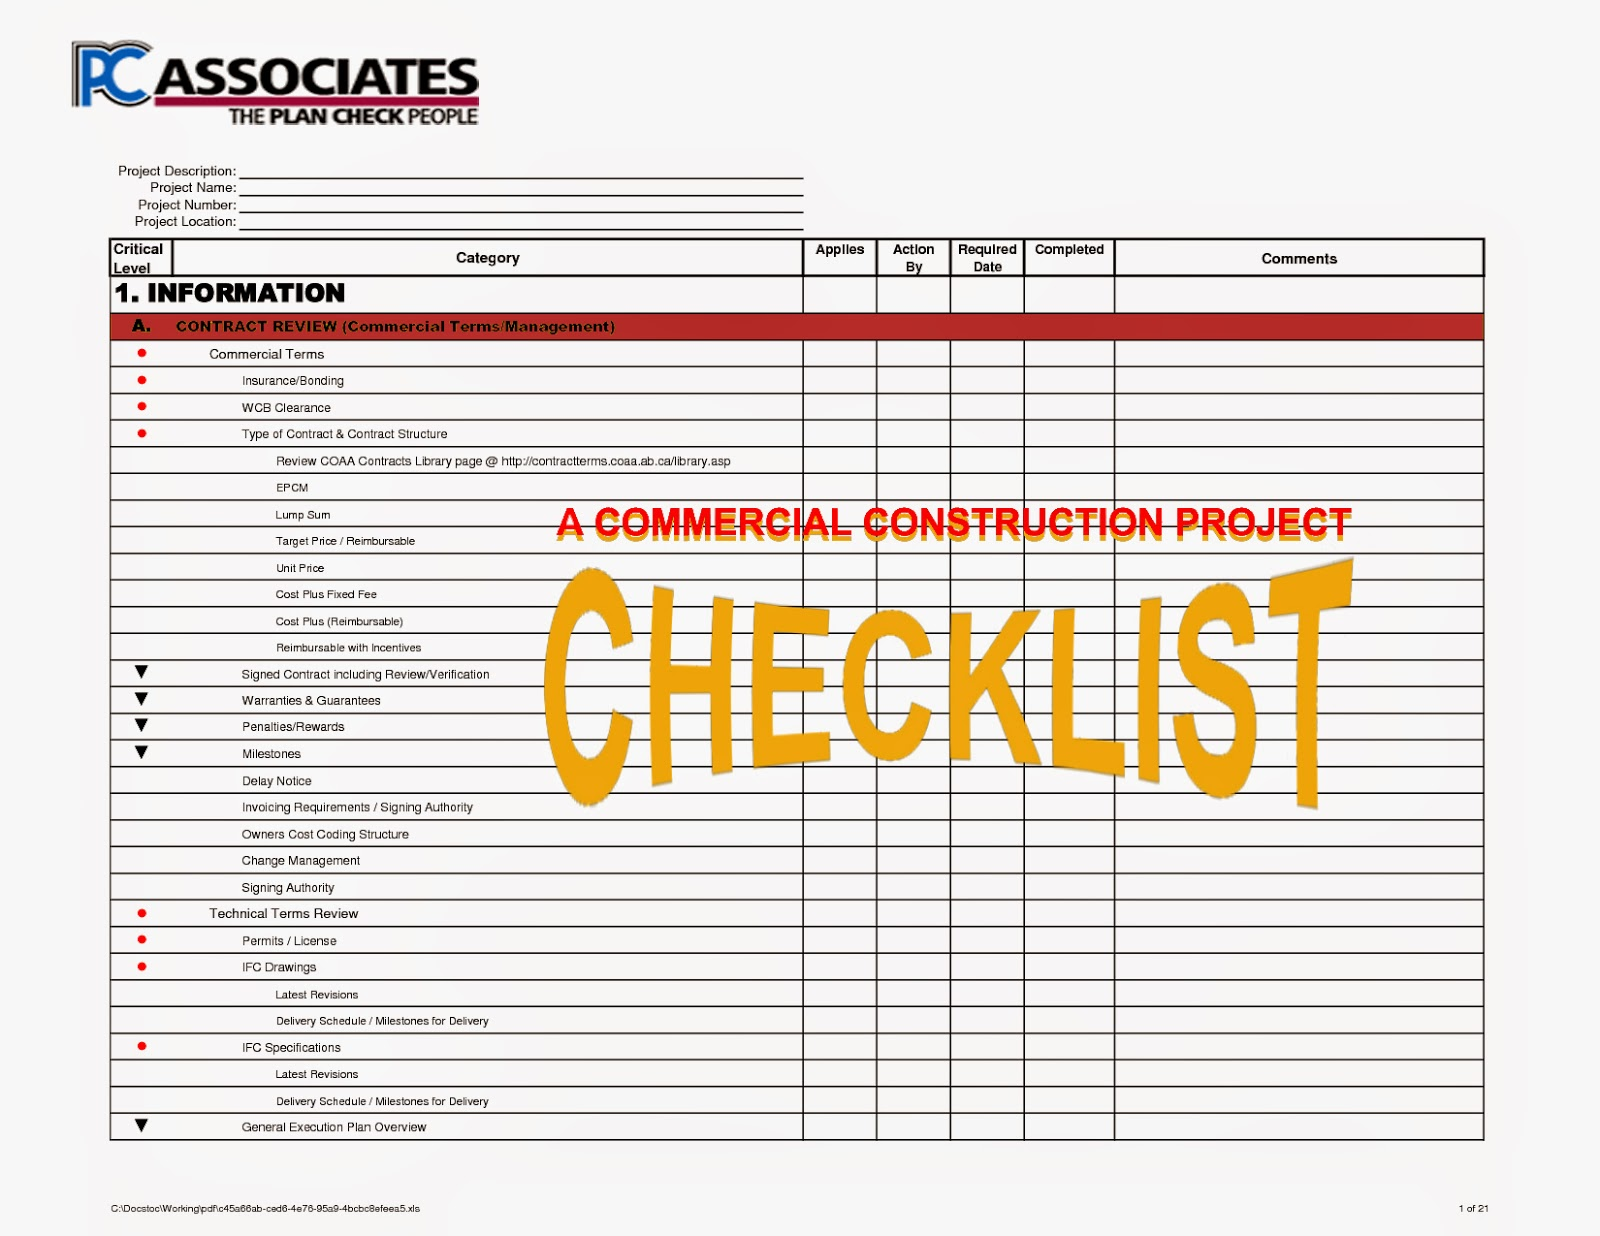 Construction Processes Review: Construction Checklist Review - An ...